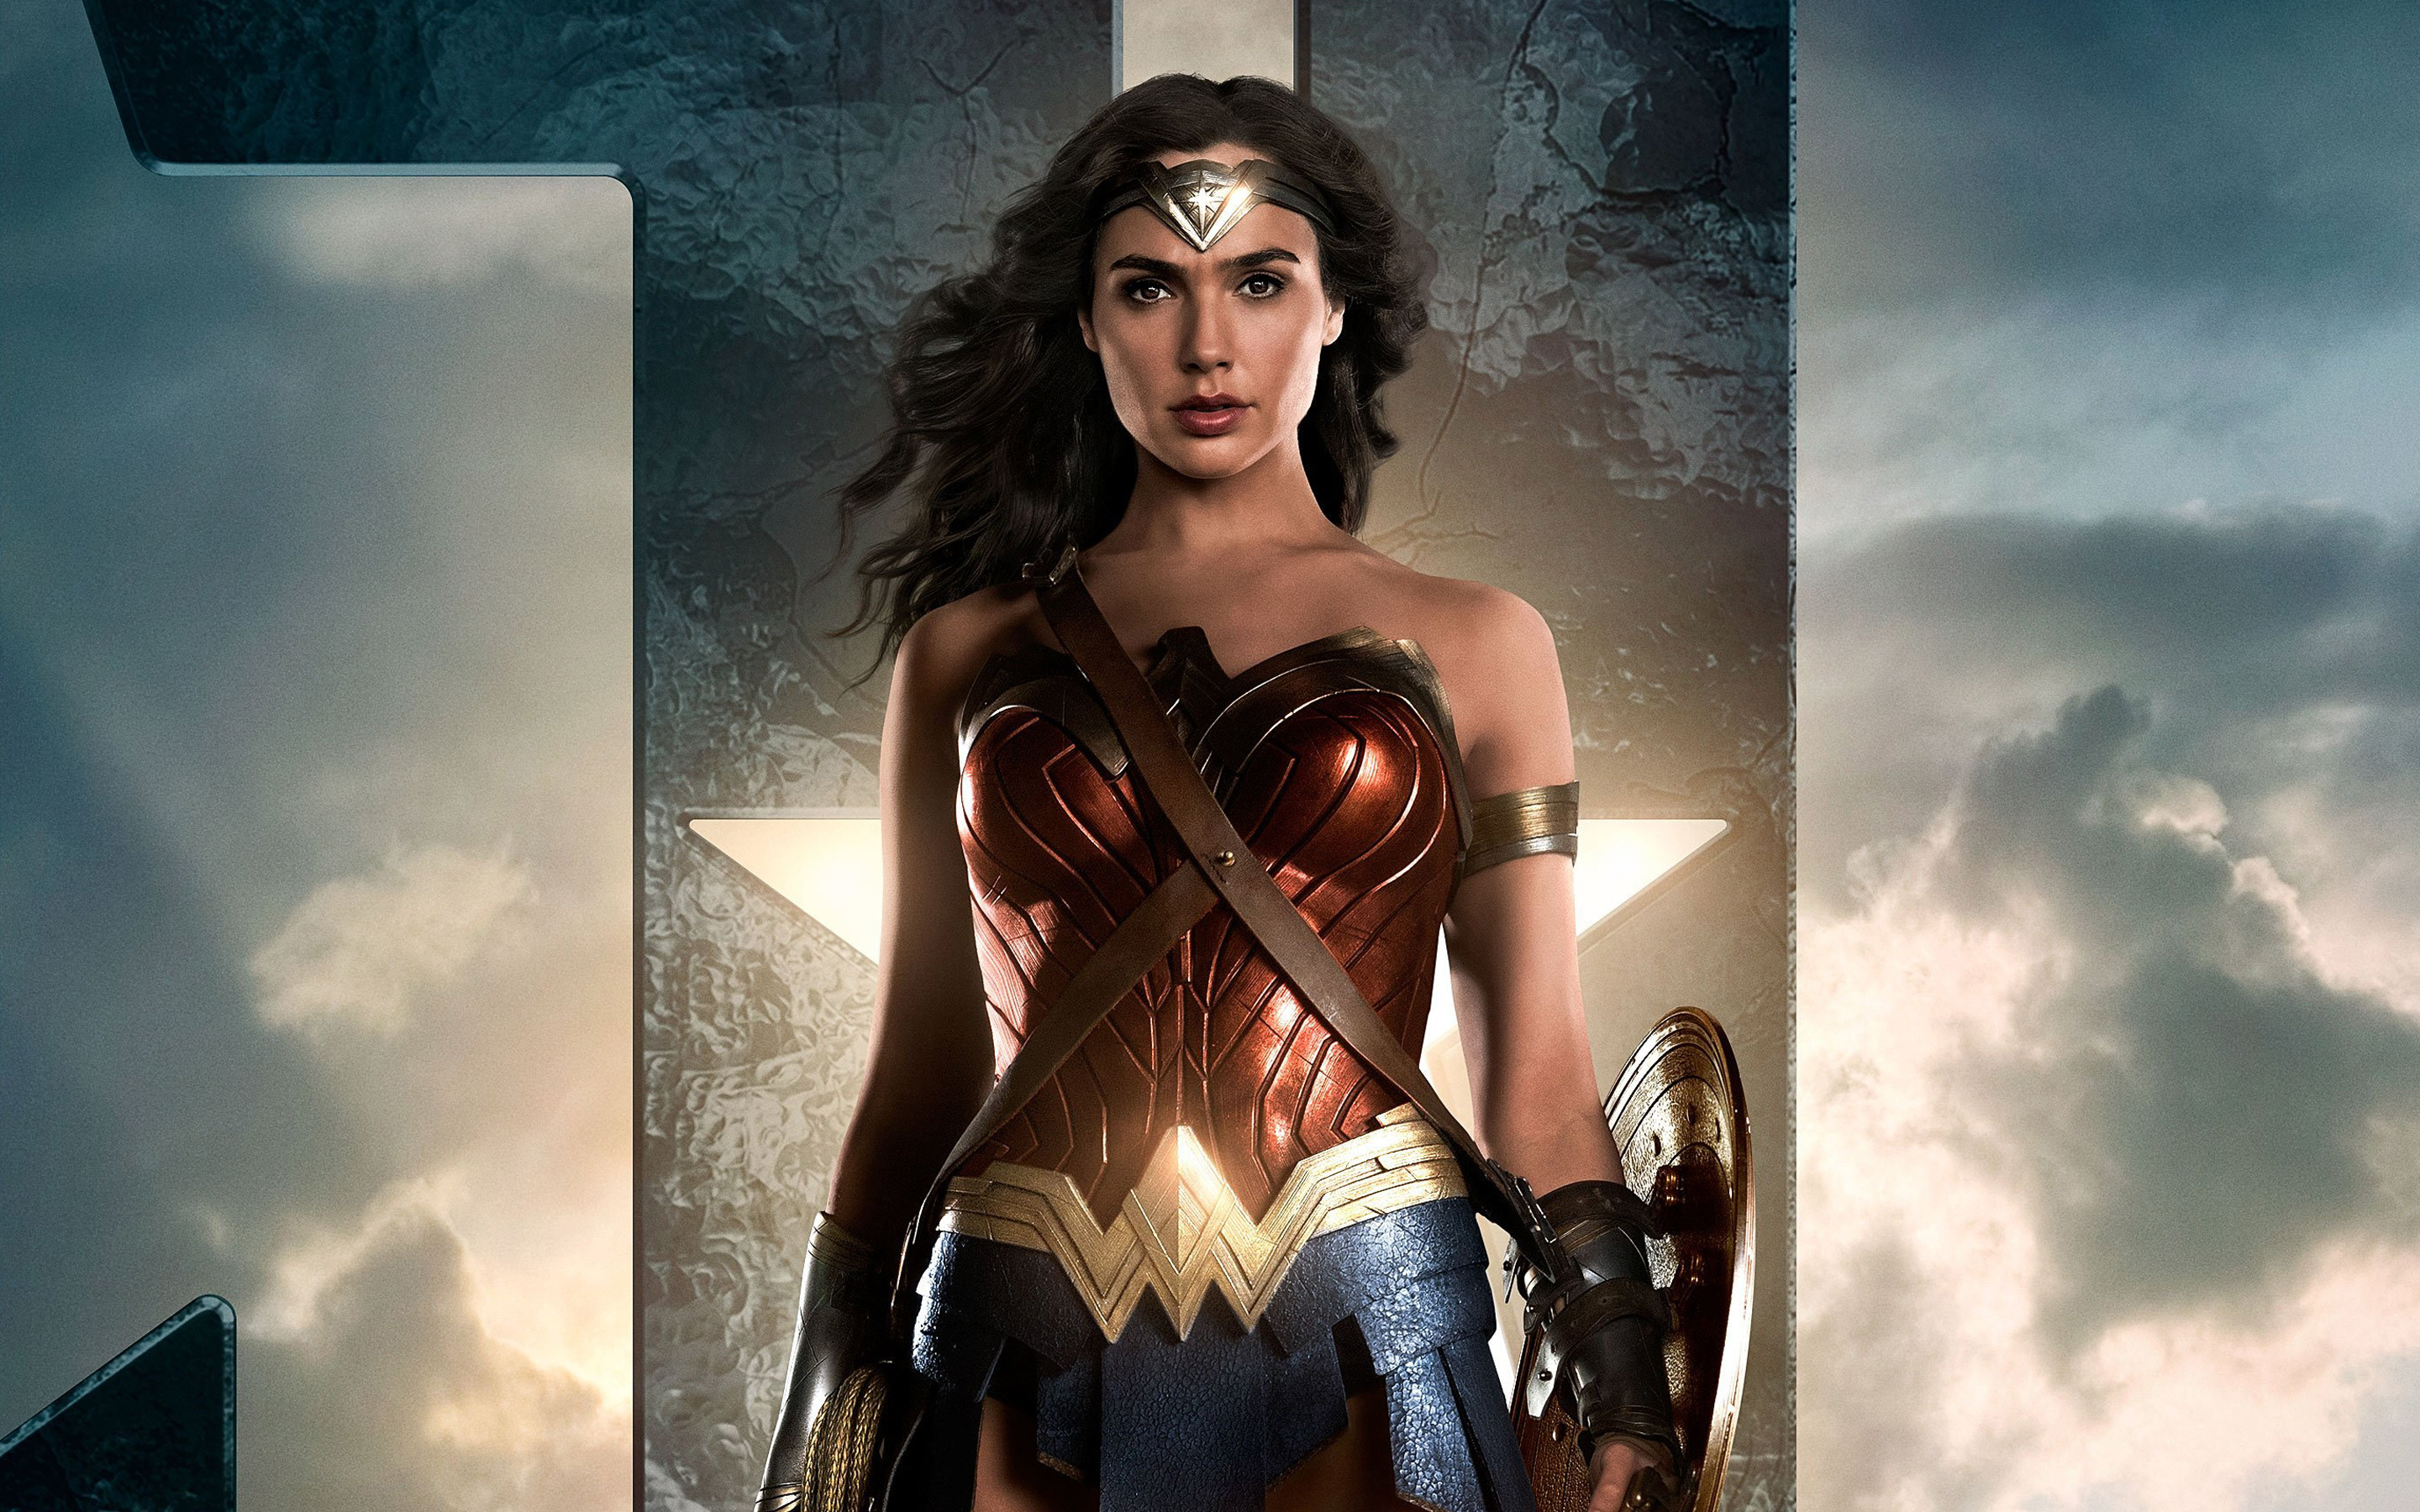 Wallpapers hd wonder woman naked hentai streaming